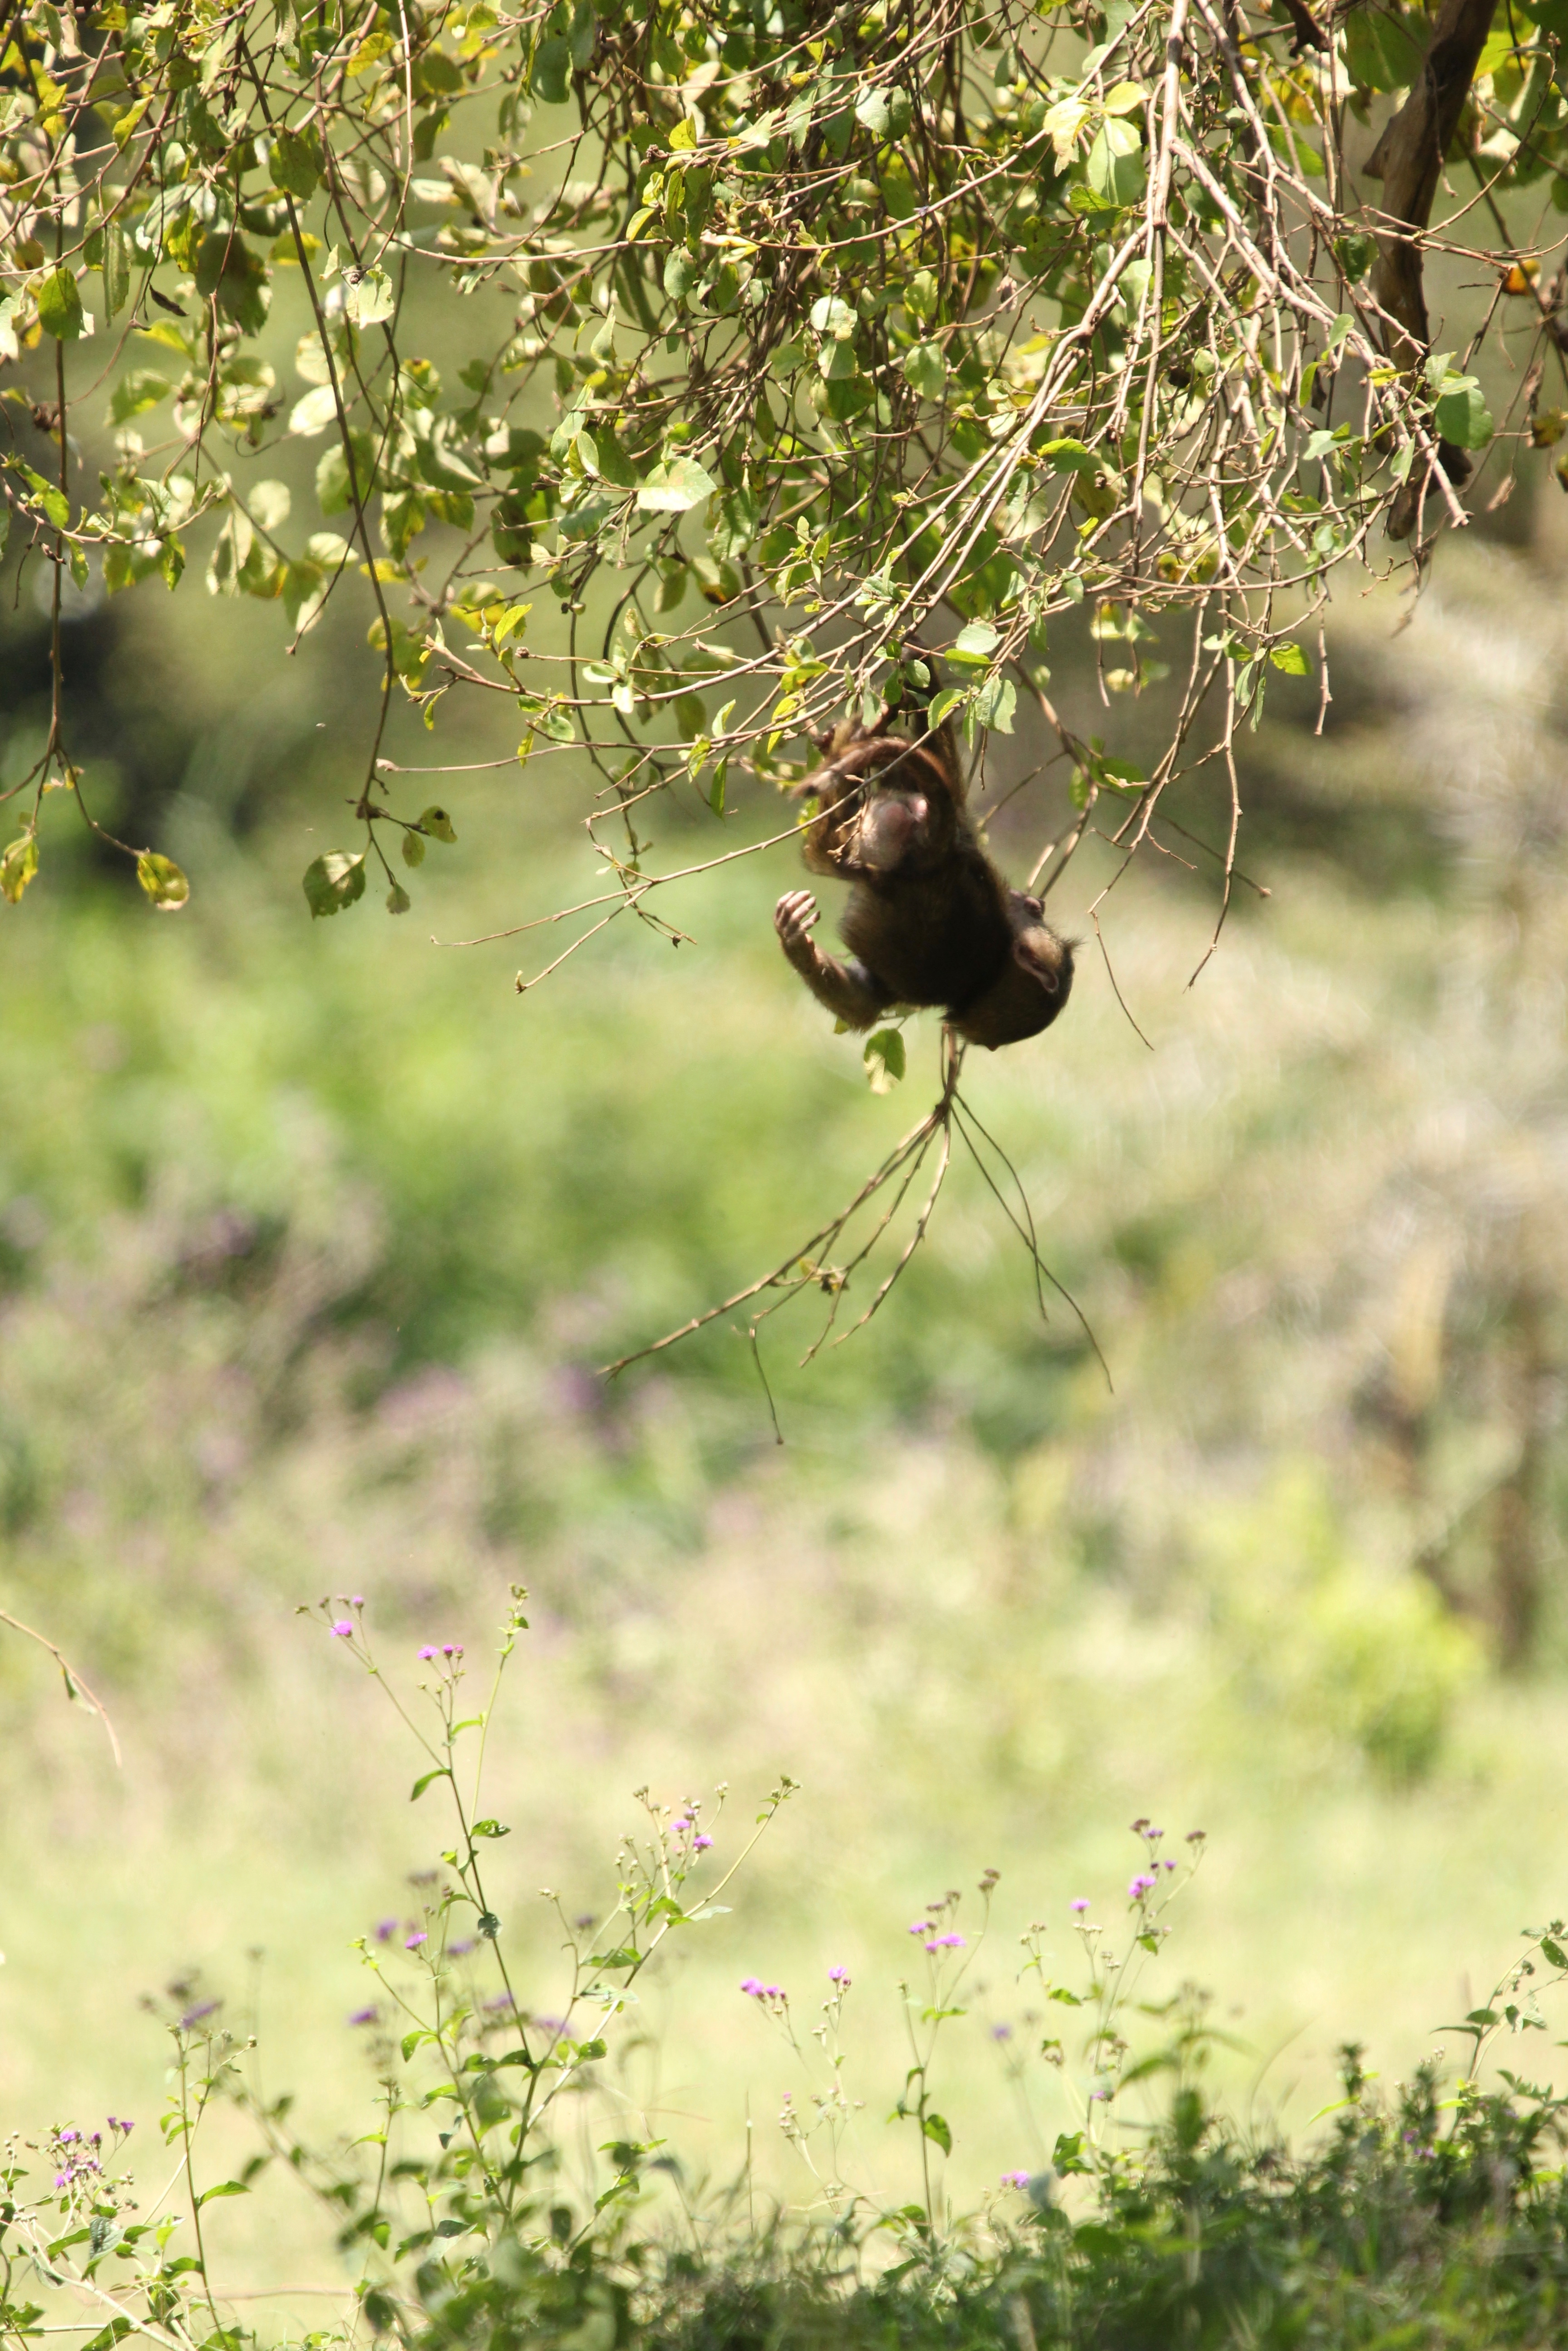 babboon up to monkey tricks (30706795338).jpg Lake Nakuru National Park, Kenya. Sep 2018. Date 31 August 2018, 16:30 Source Young olive babboon up to monkey